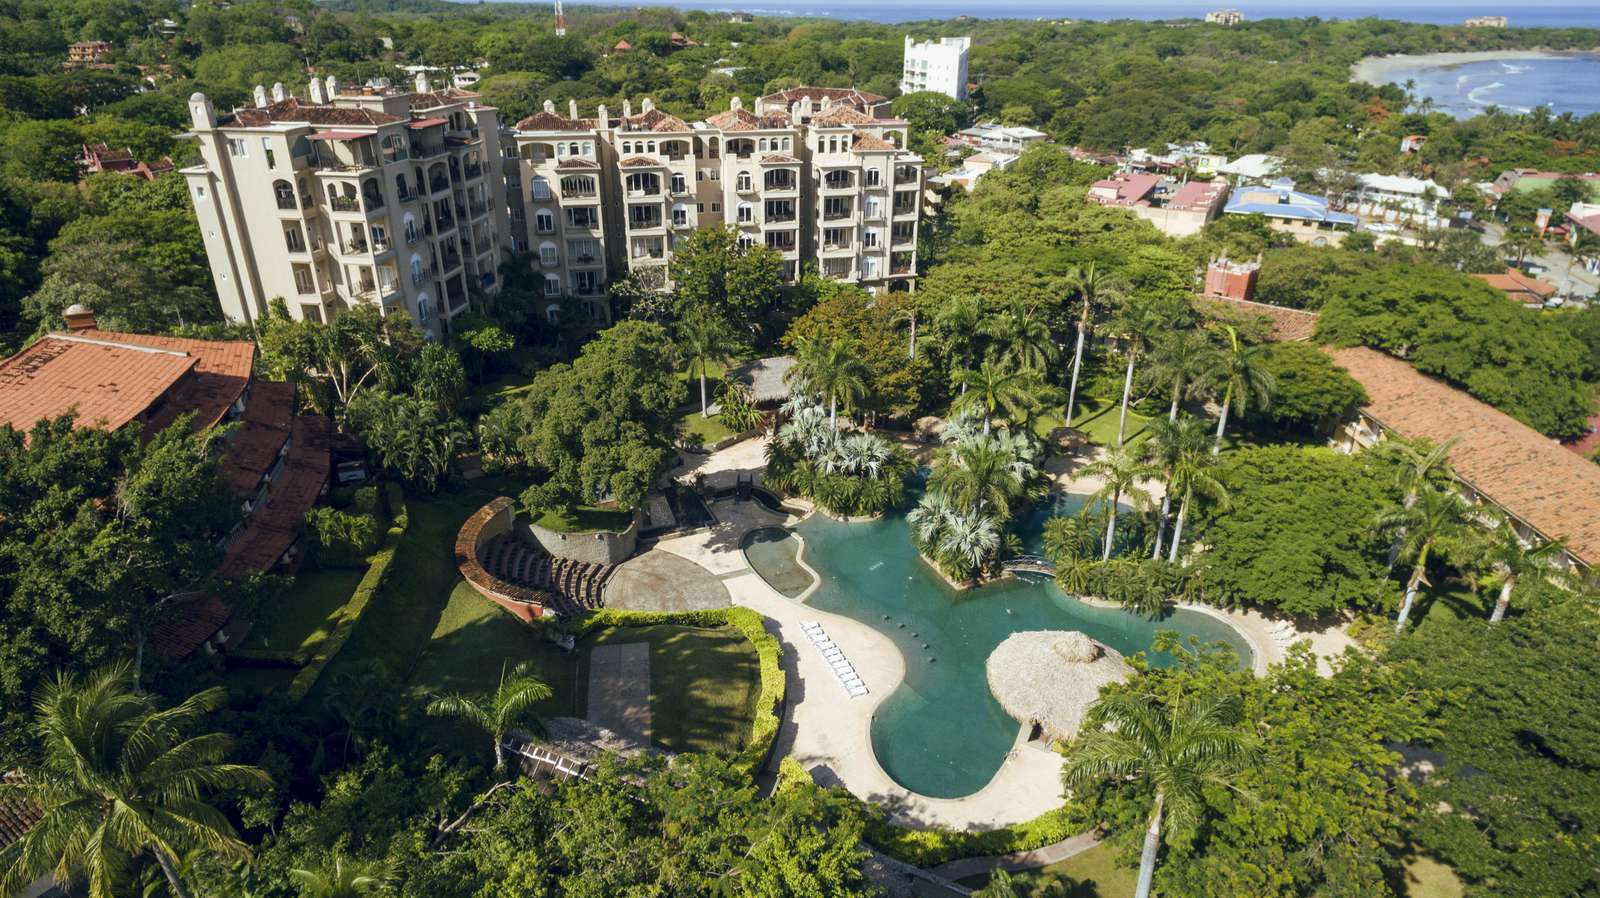 Aerial view of the Matapalo building and Diria Resort Pool